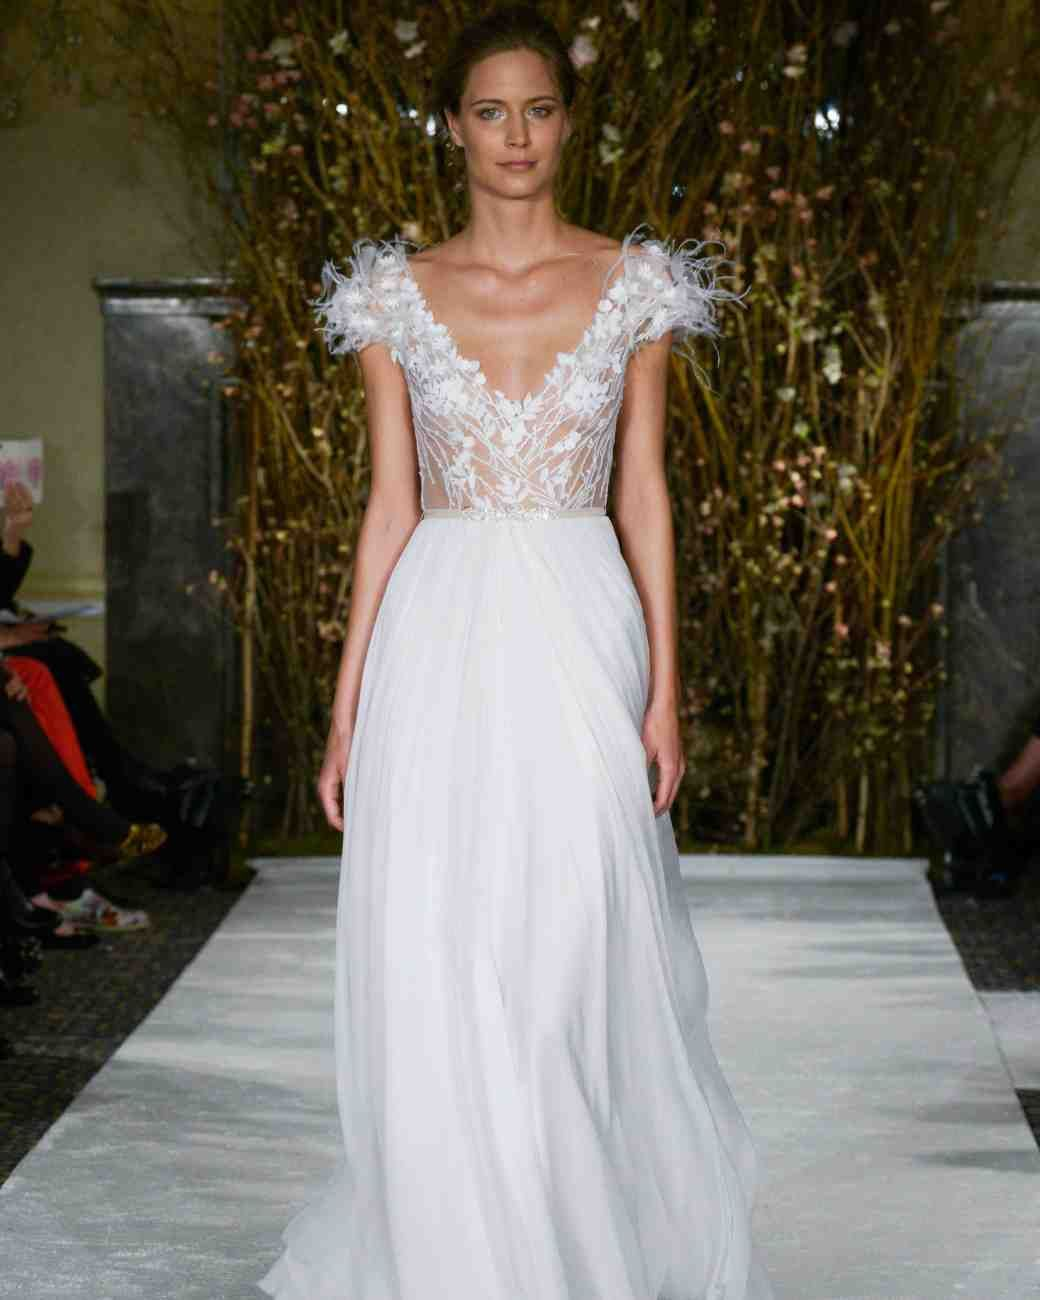 The best wedding dress trends from bridal fashion week just